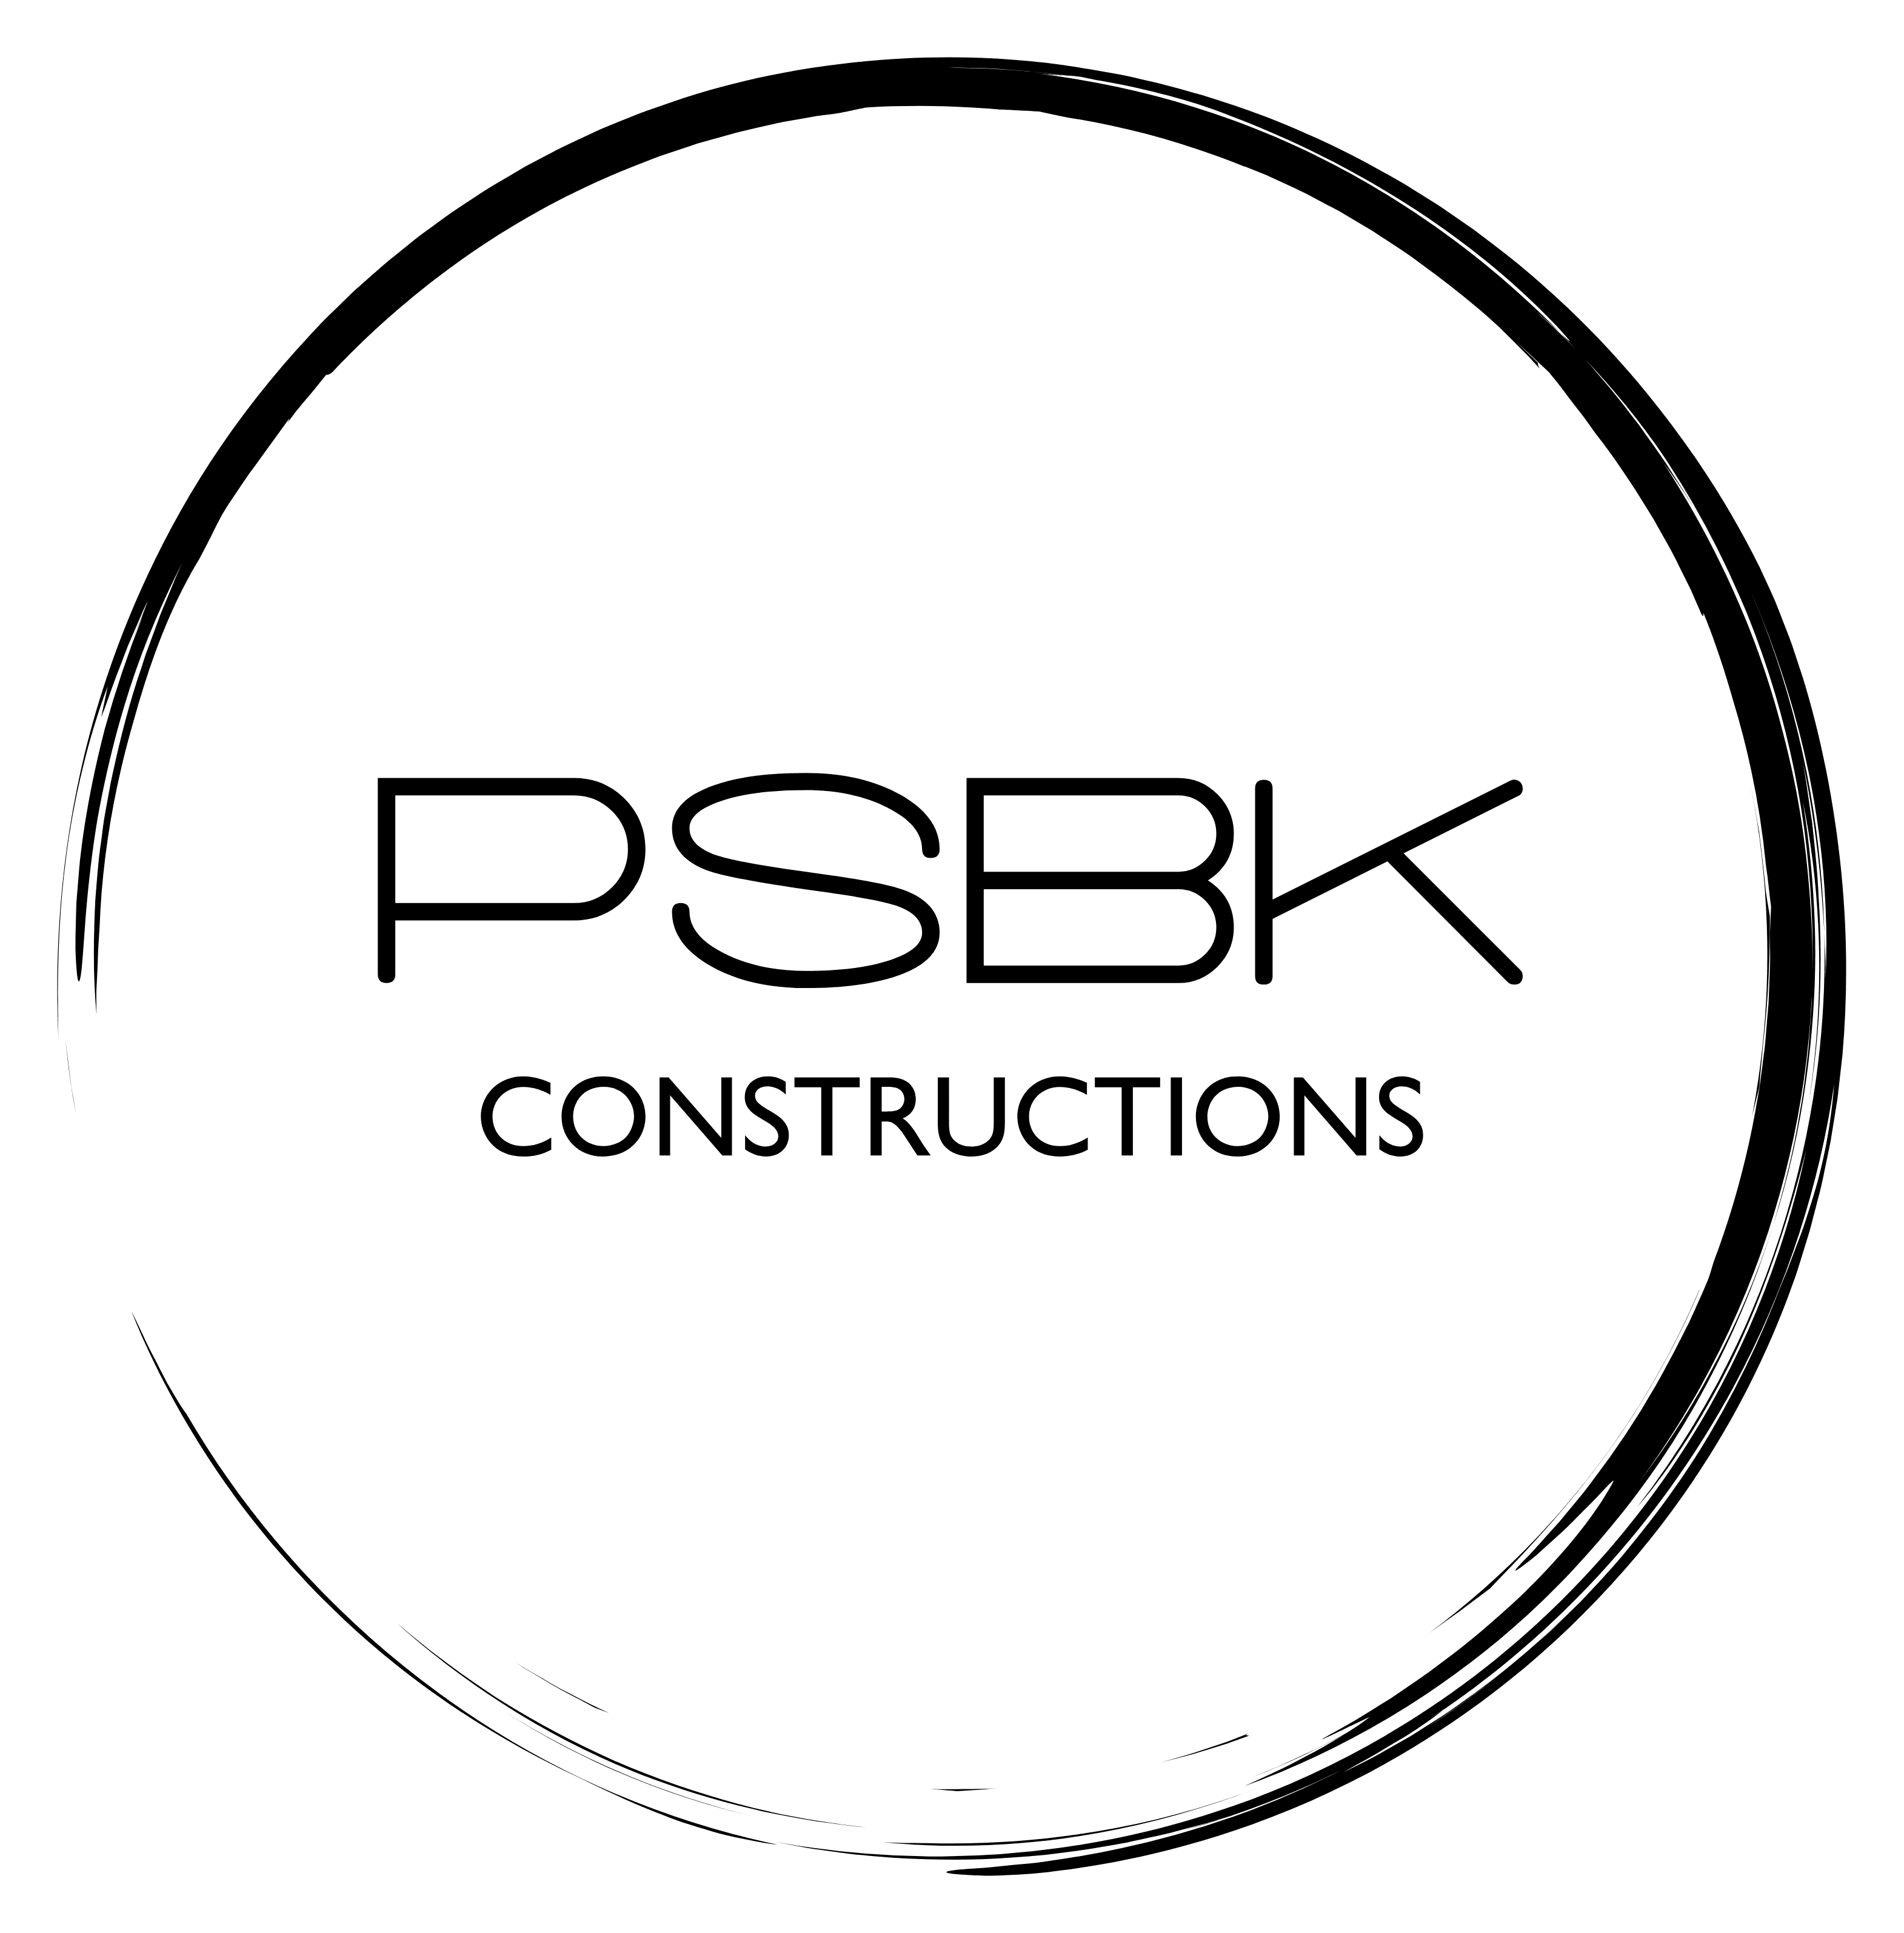 PSBK Constructions | IndigoZest | Smart Home | Home Automation Specialist | Control 4 | Systems Integrator | Home Technology